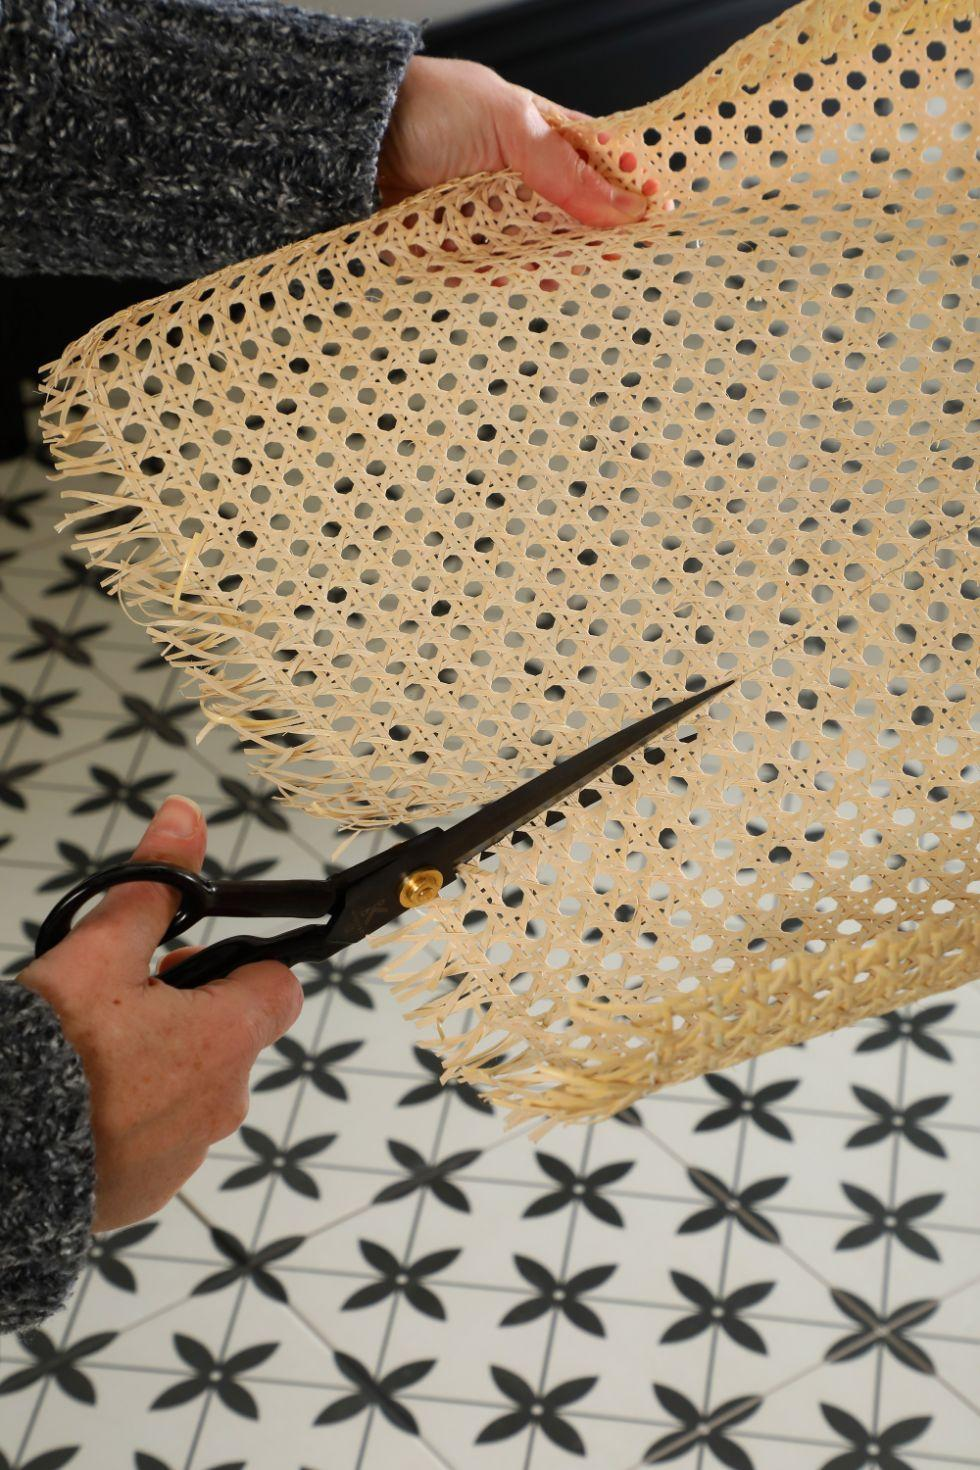 Step 3 - Measure and cut cane webbing